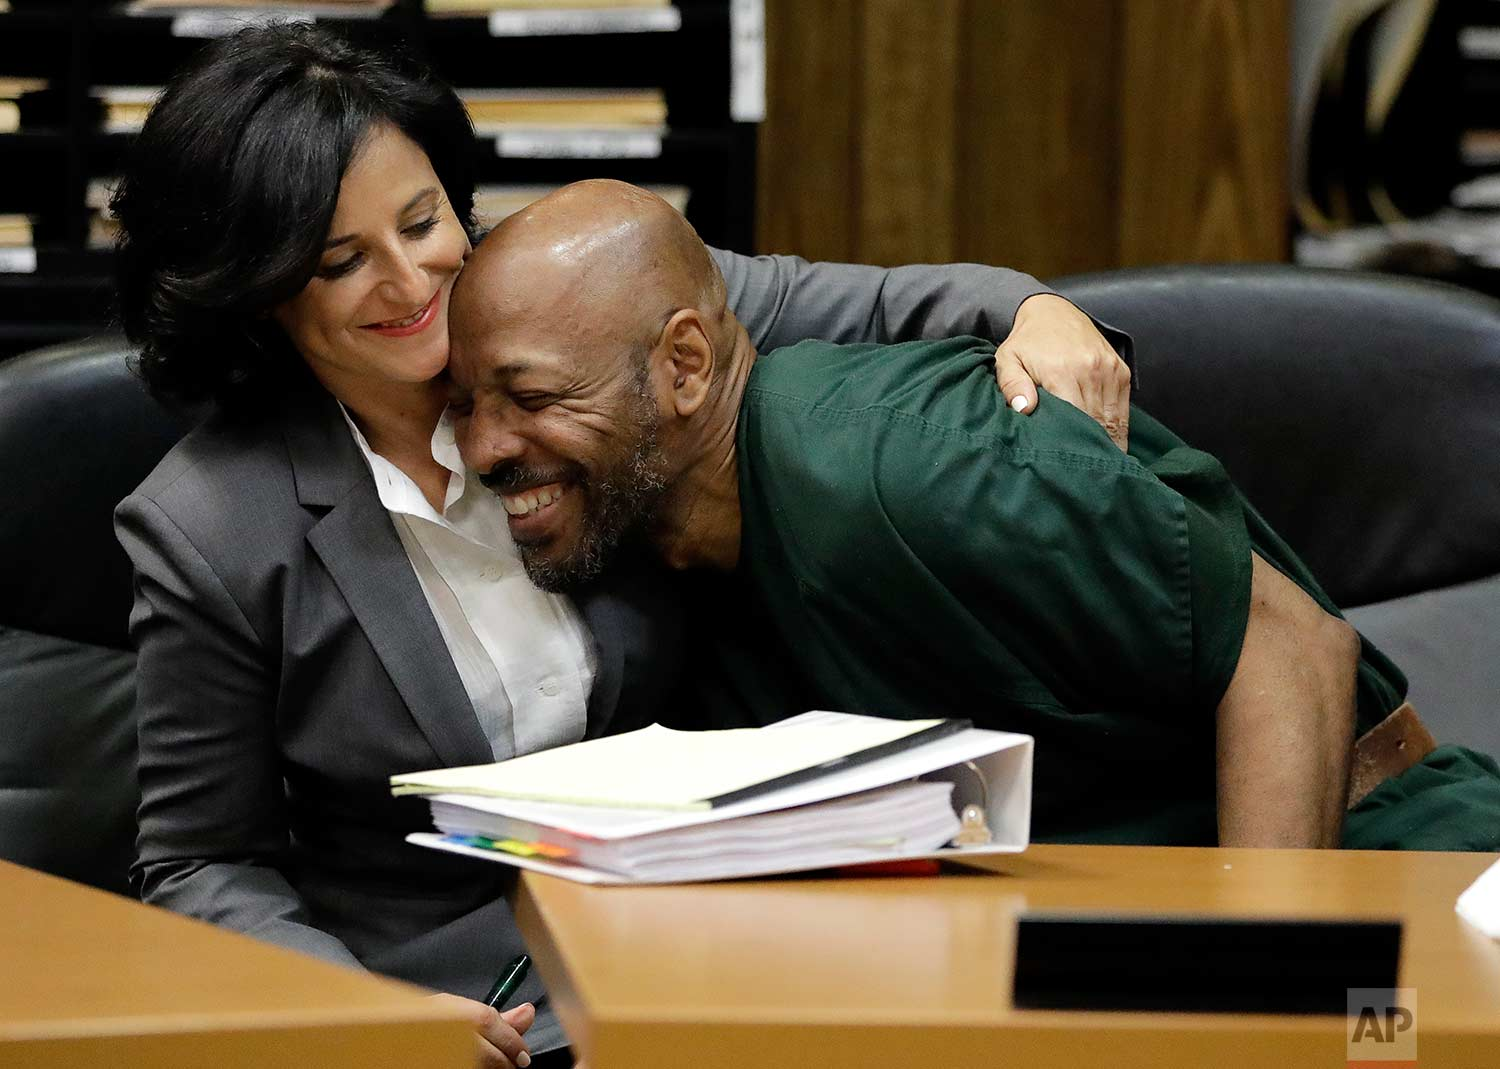 Eric Kelley, right, is hugged by his lawyer Vanessa Potkin moments after Passaic County Superior Court Judge Joseph Portelli granted Kelley a retrial in the case in which he was found guilty of the killing of a video store employee during a robbery in 1993, during a hearing, Friday, Sept. 15, 2017, in Paterson, N.J. Kelley and Ralph Lee, who was not present during the hearing, had been convicted and were currently serving terms. The new trials were granted after new DNA tests linked an important piece of evidence to another man. (AP Photo/Julio Cortez)